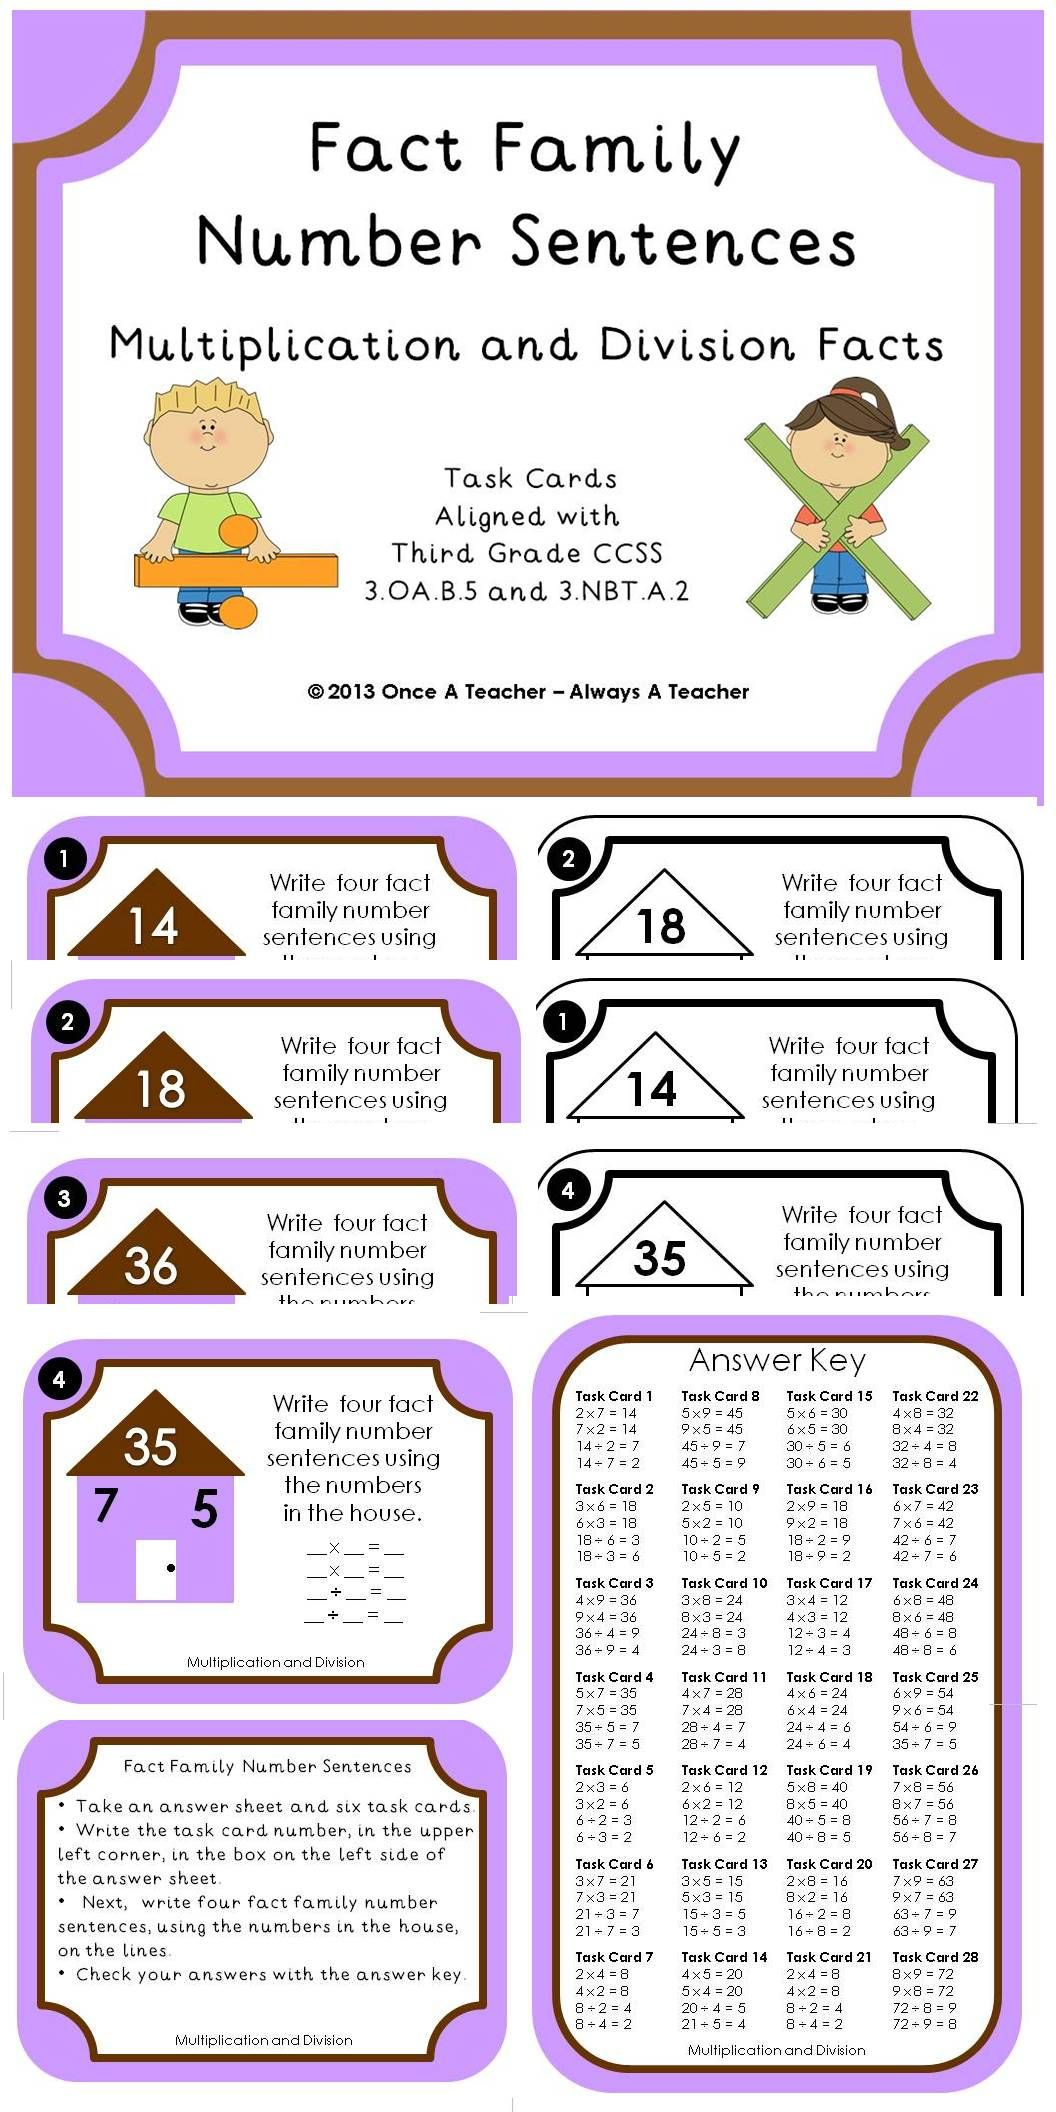 Fact Family Number Sentences Multiplication And Division